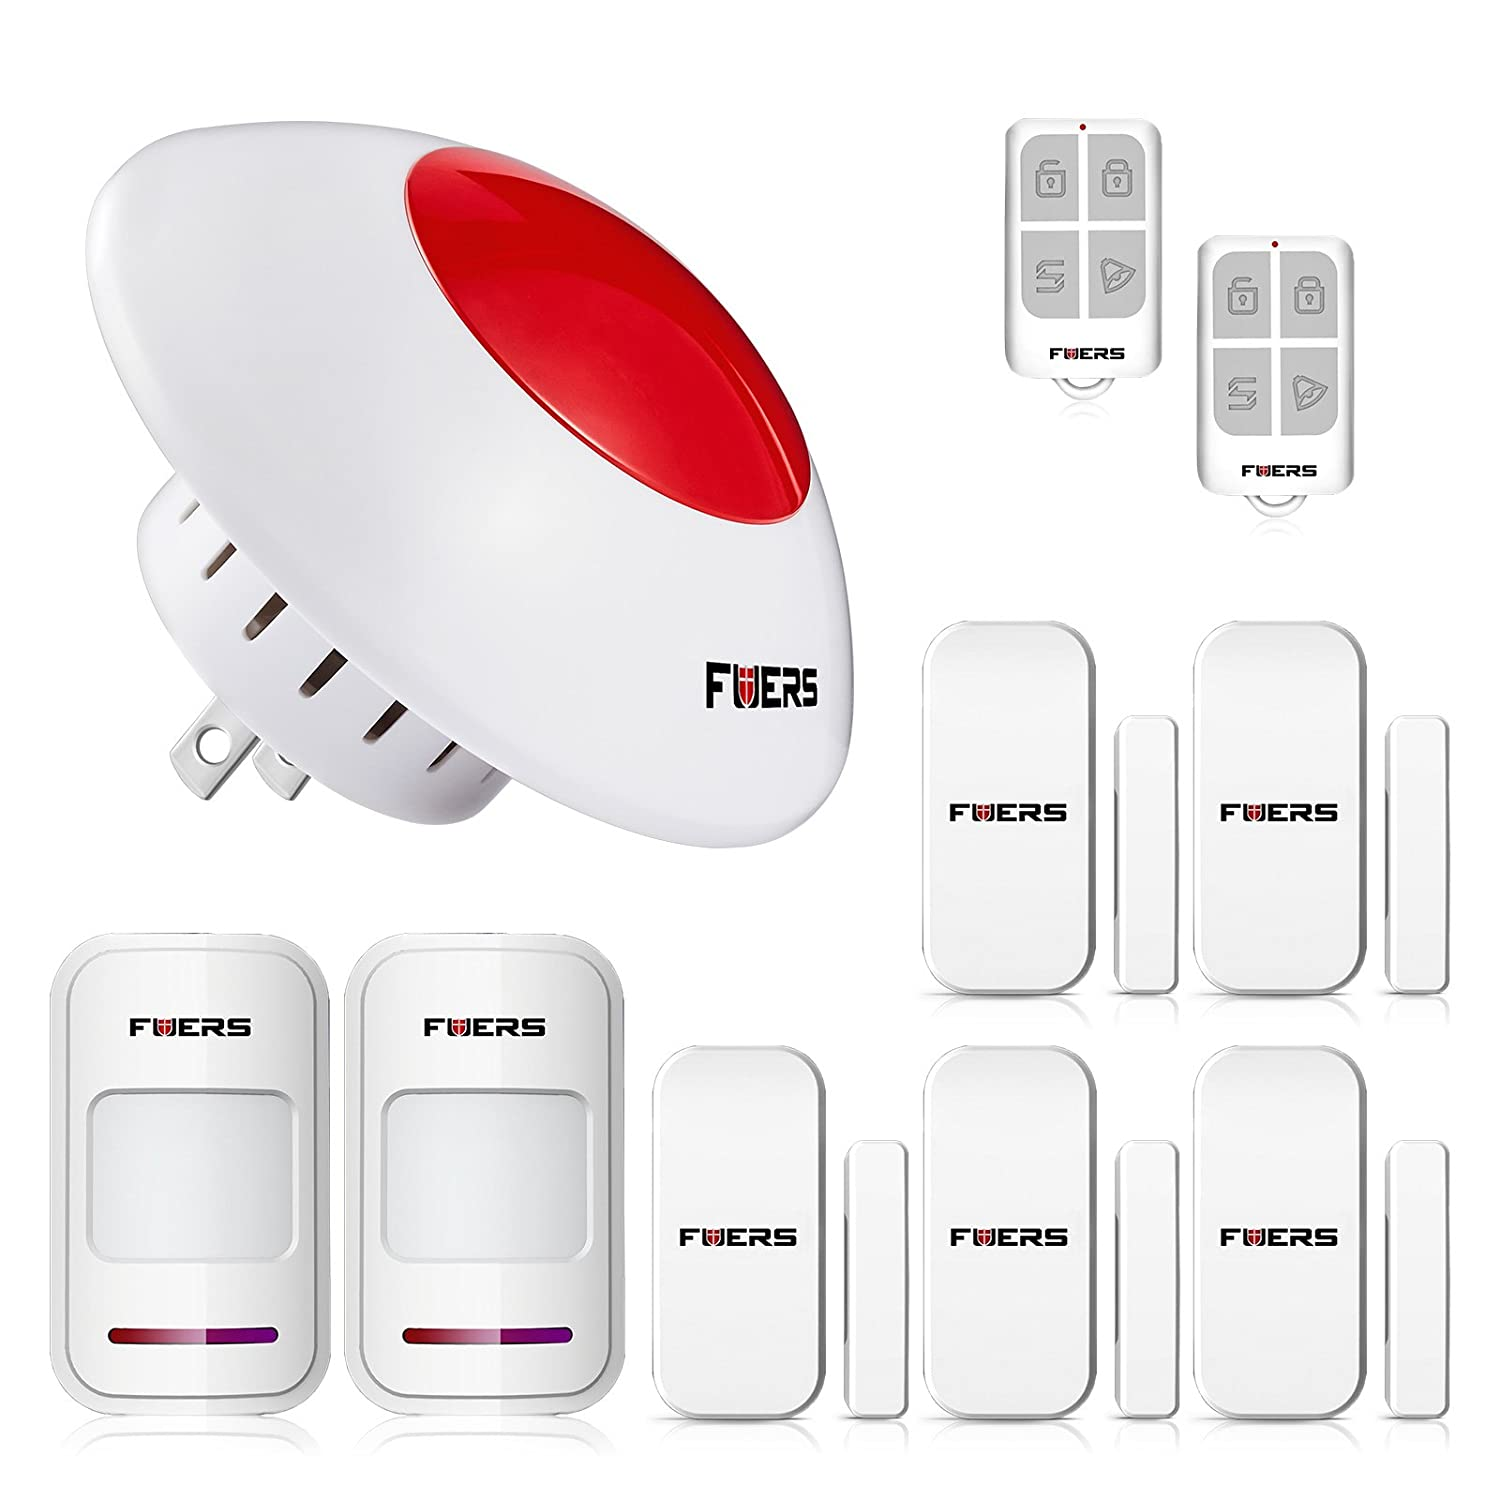 Fuers Standalone Home Office & Shop Security Alarm System Kit,Wireless Indoor Strobe Flashing Siren with Remote Key Fob and Door Contact Sensor